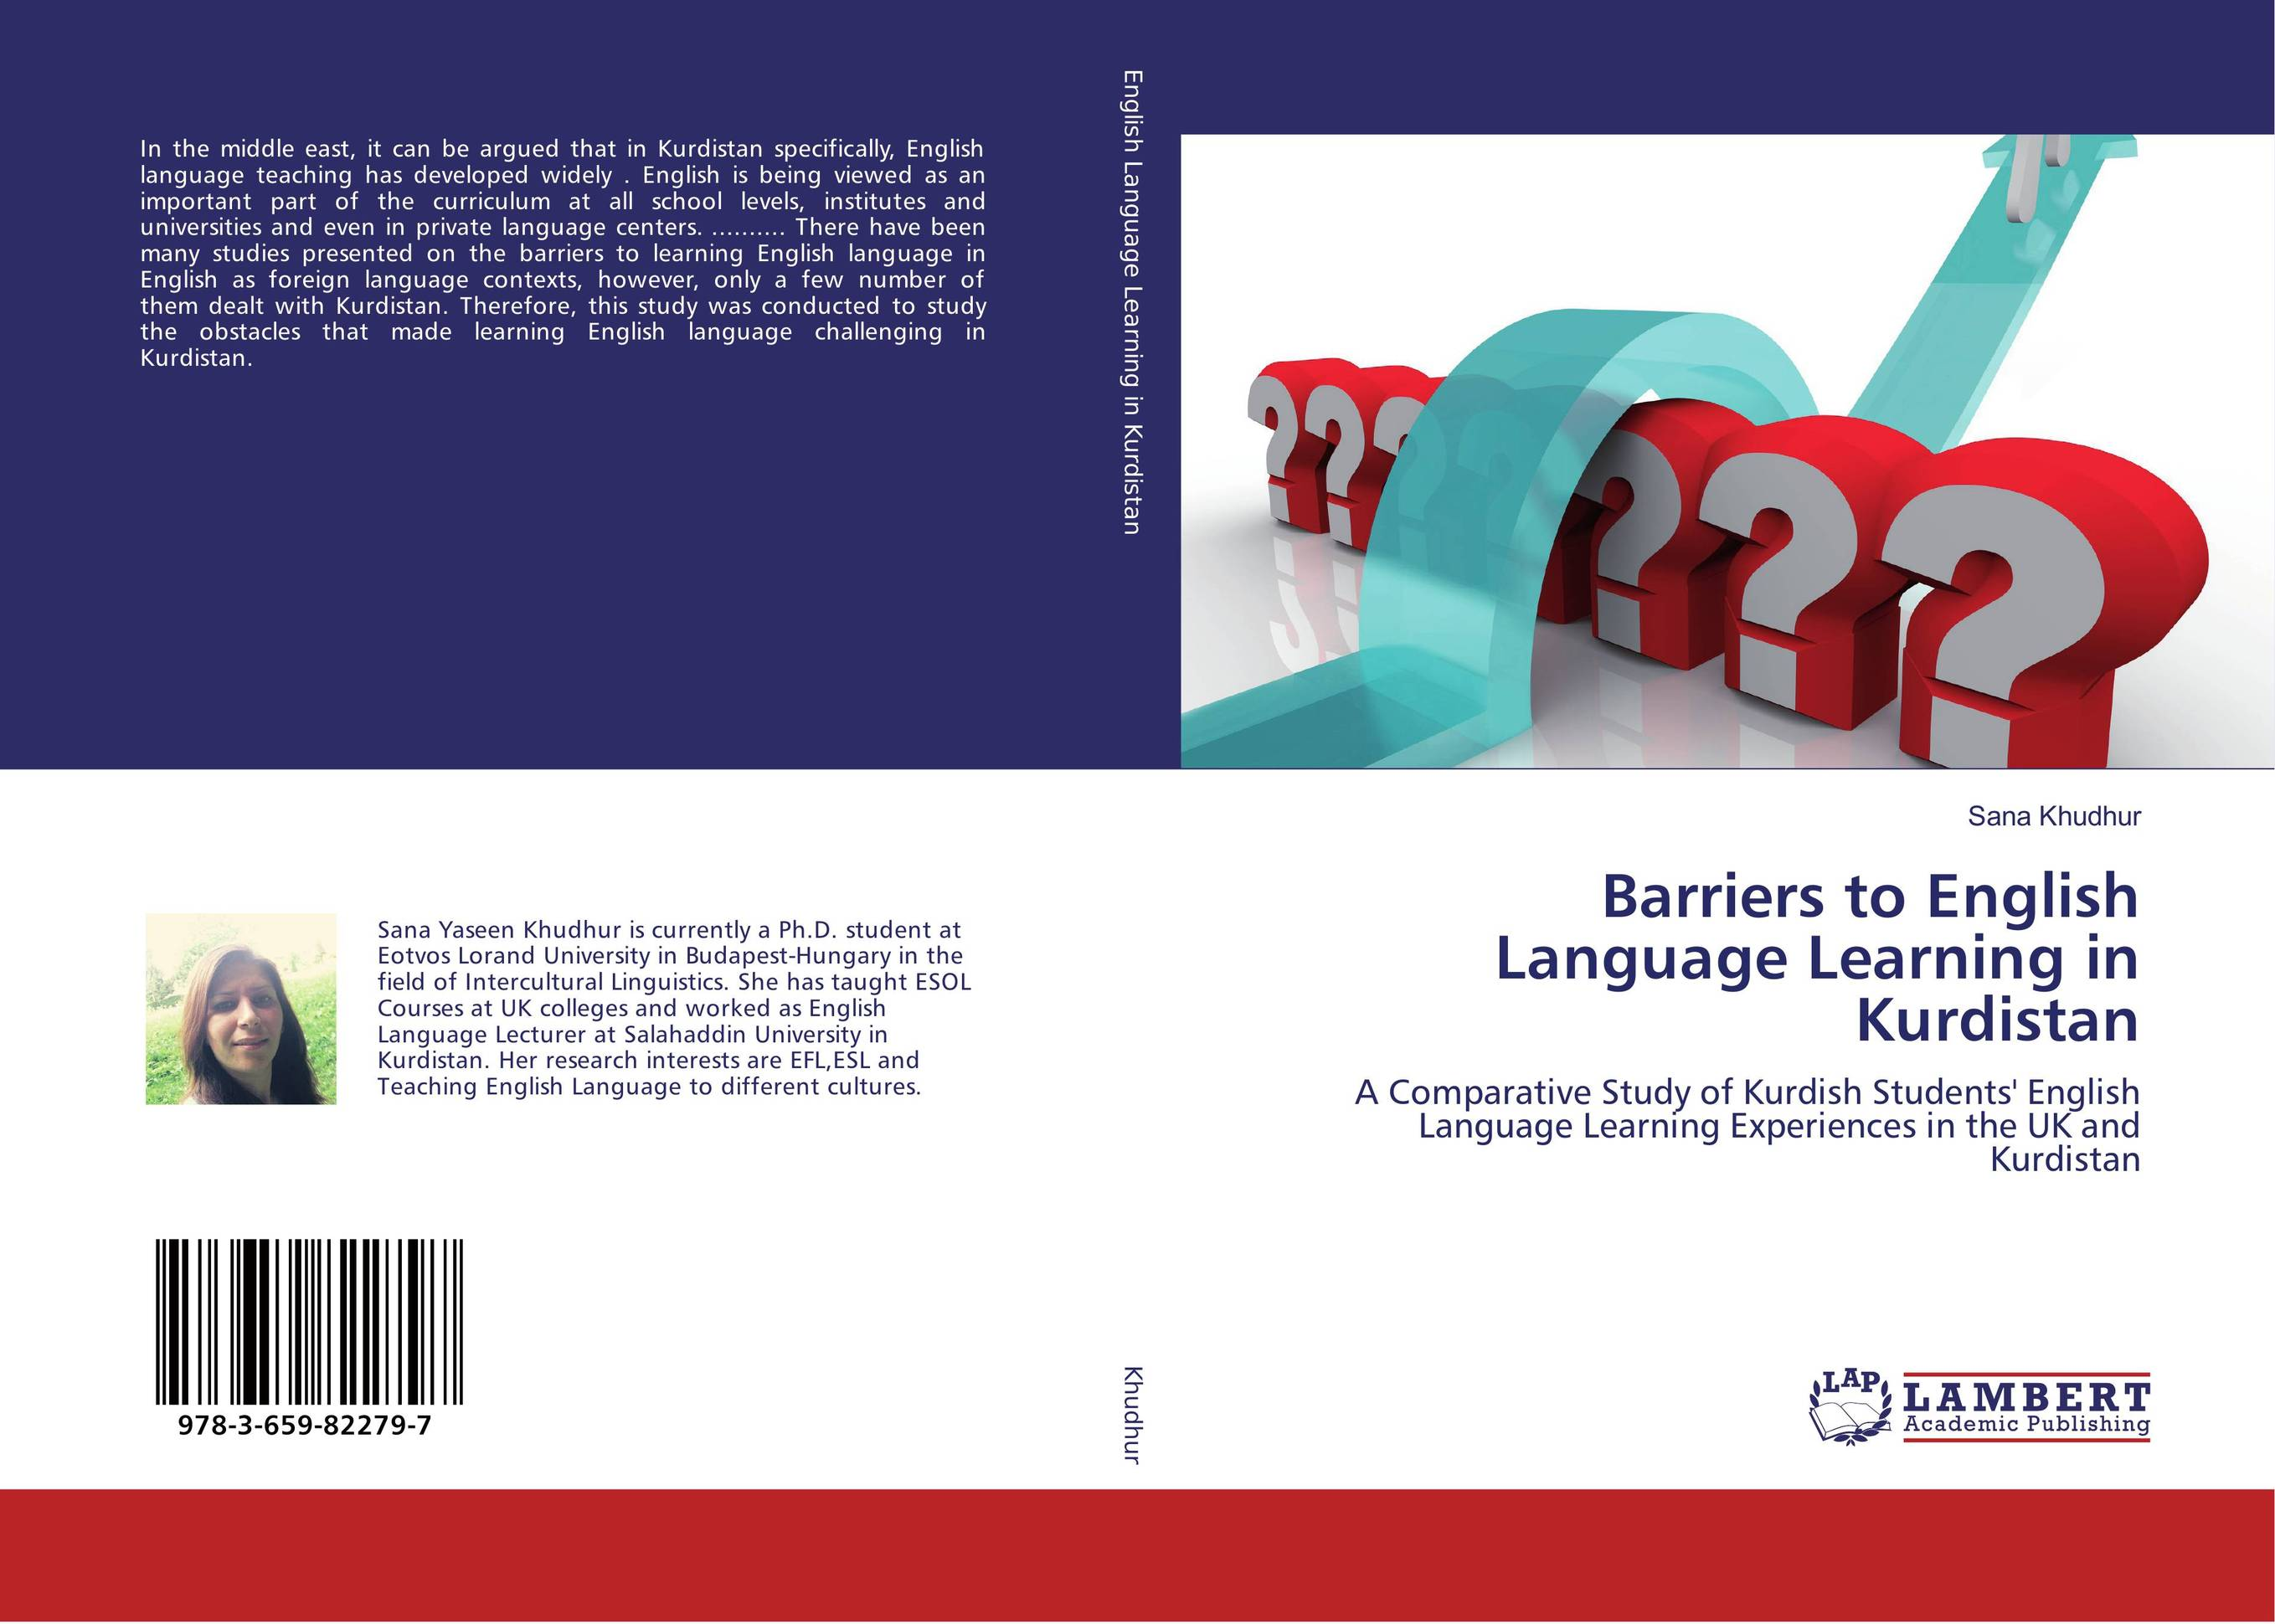 Barriers to English Language Learning in Kurdistan